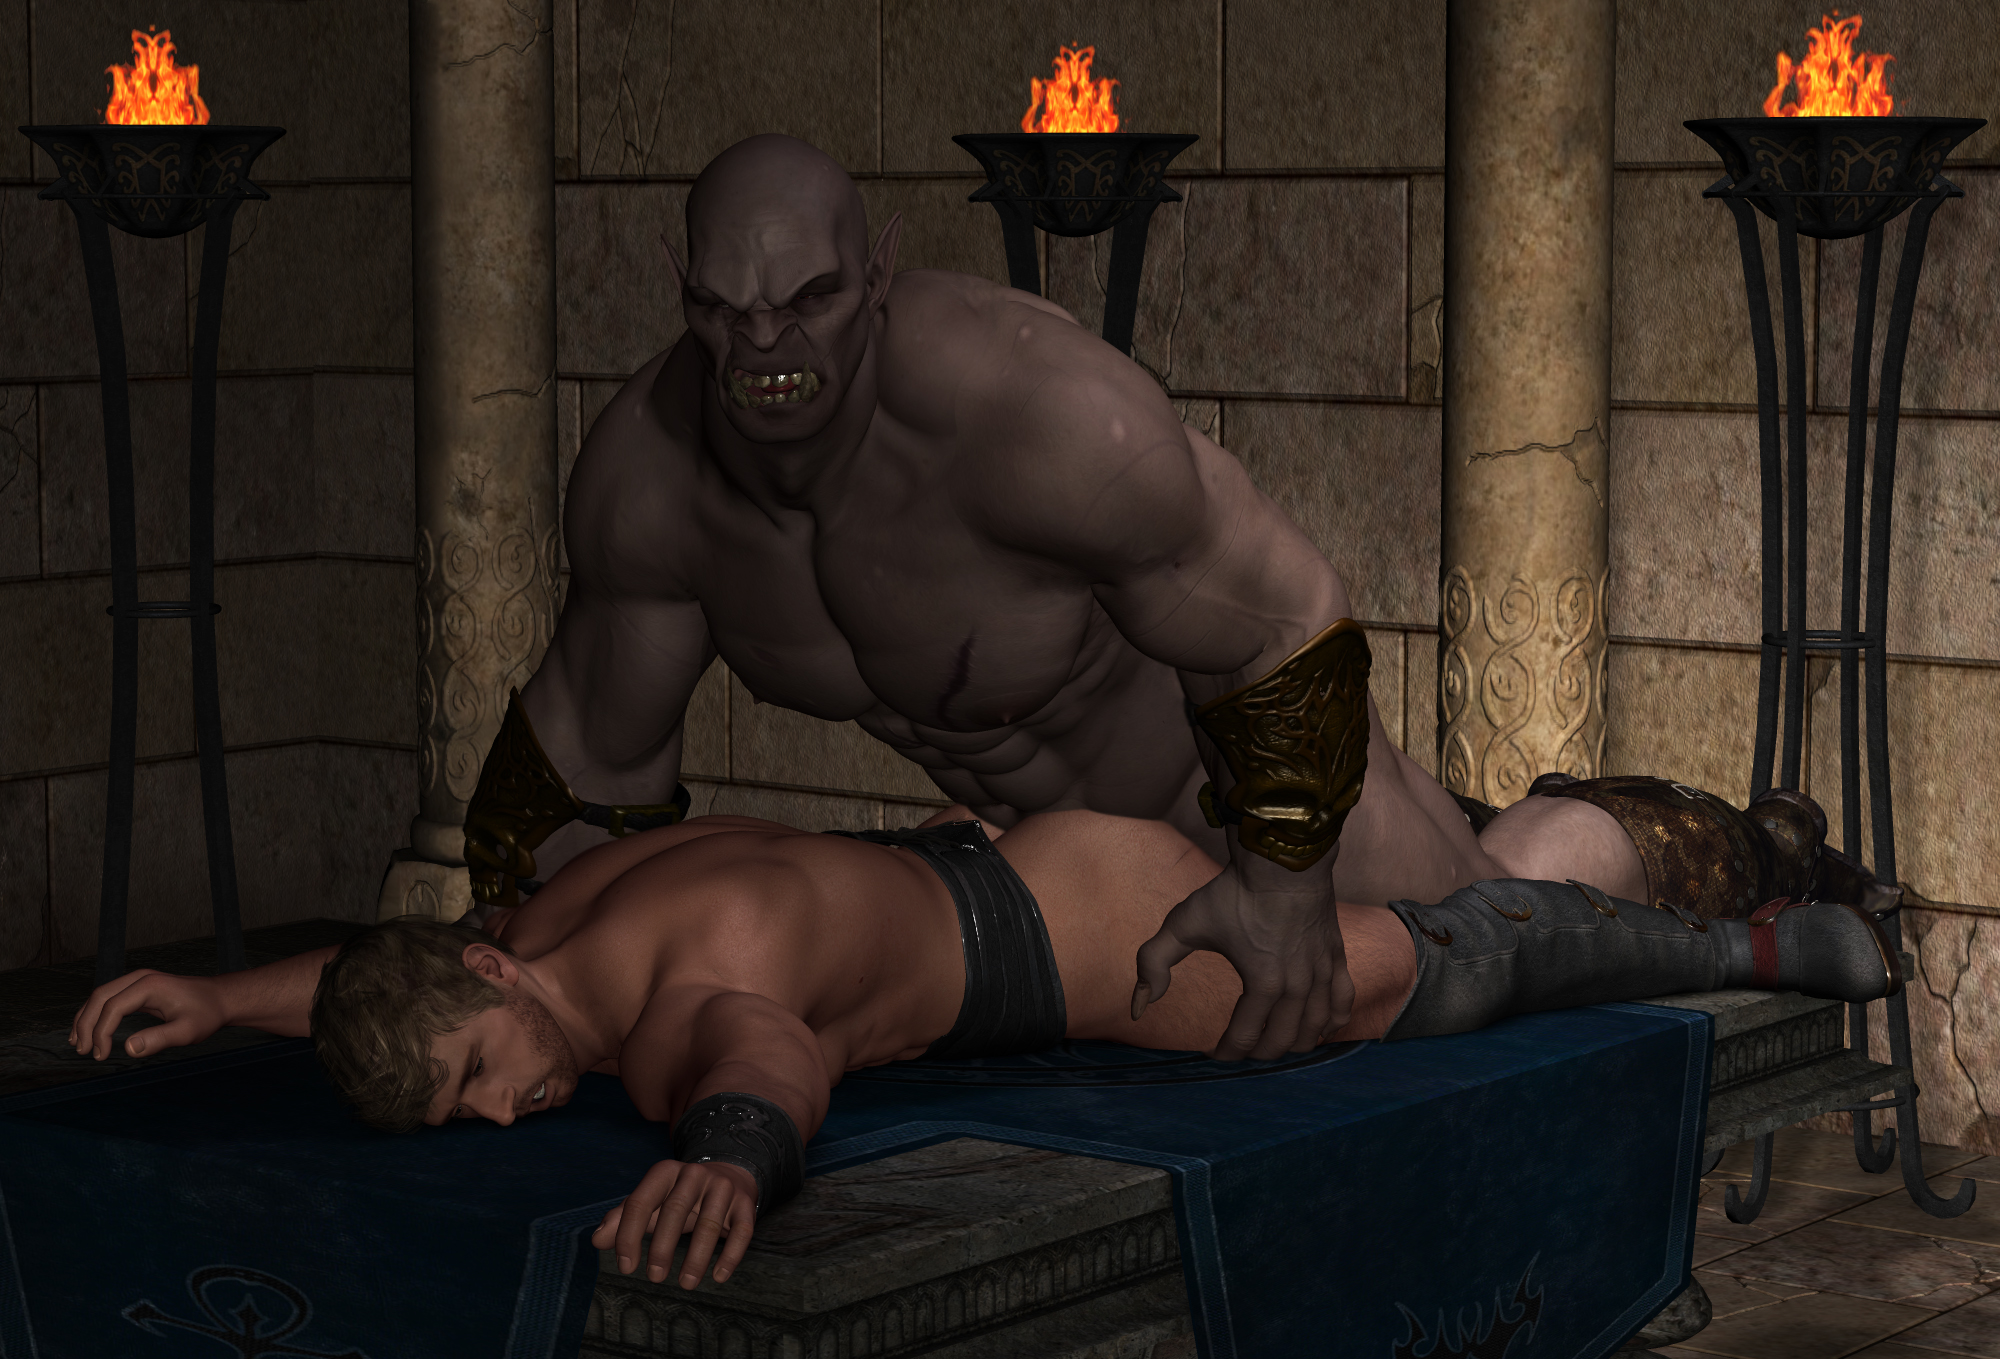 Orc human cock gay softcore galleries